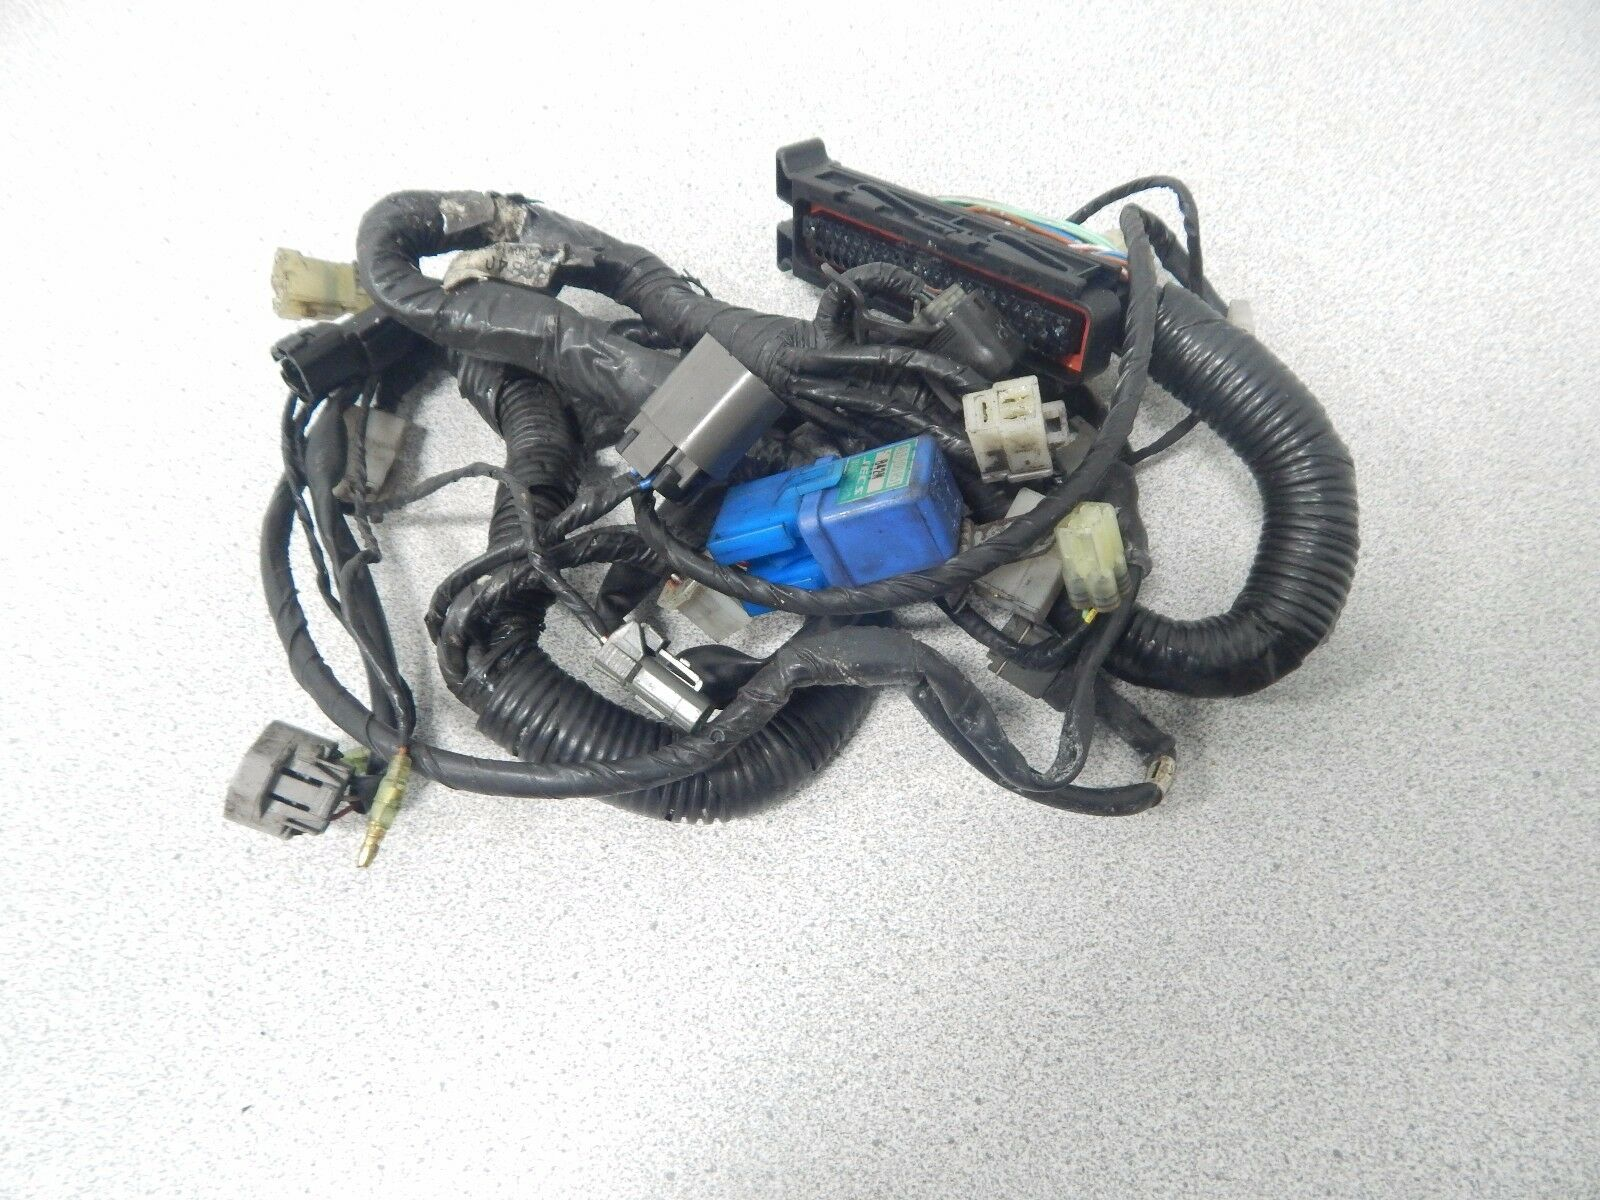 Arctic Cat Fuel Injection Wiring Harness Ext Dlx Pantera Efi 1997 1998 3005 204 Picture 1 Of 2